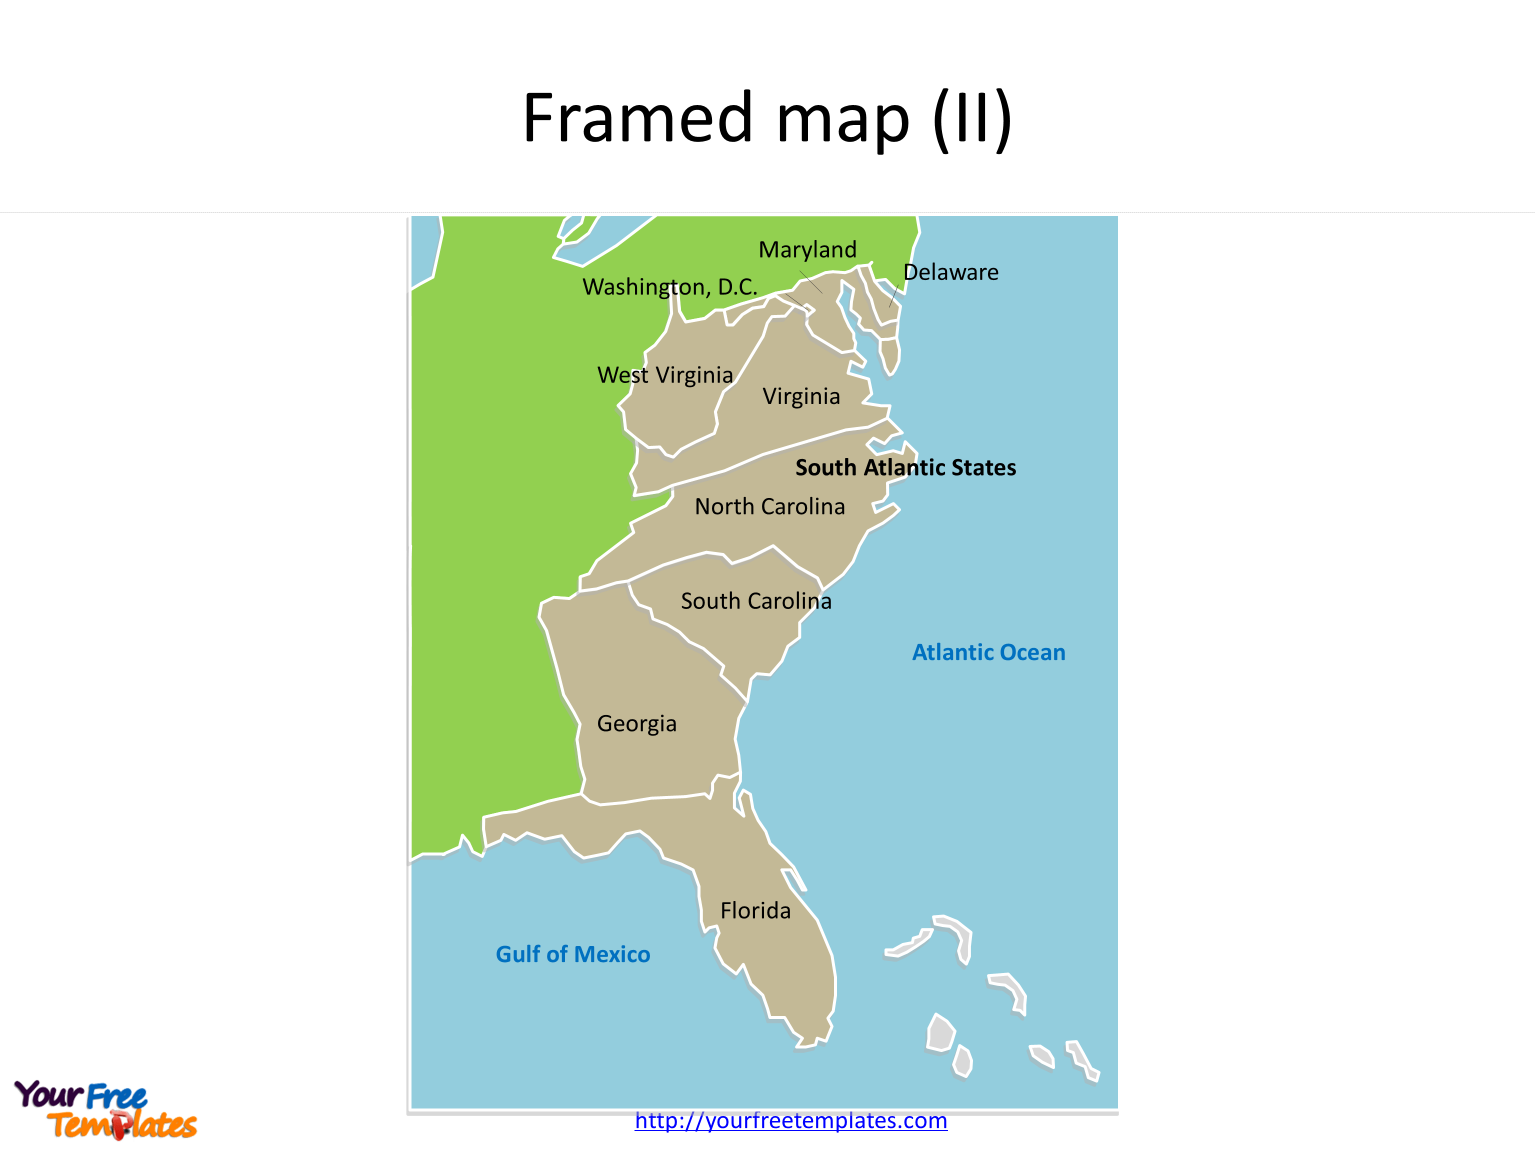 US maps Framed State map for South Atlantic States on the US map PowerPoint templates